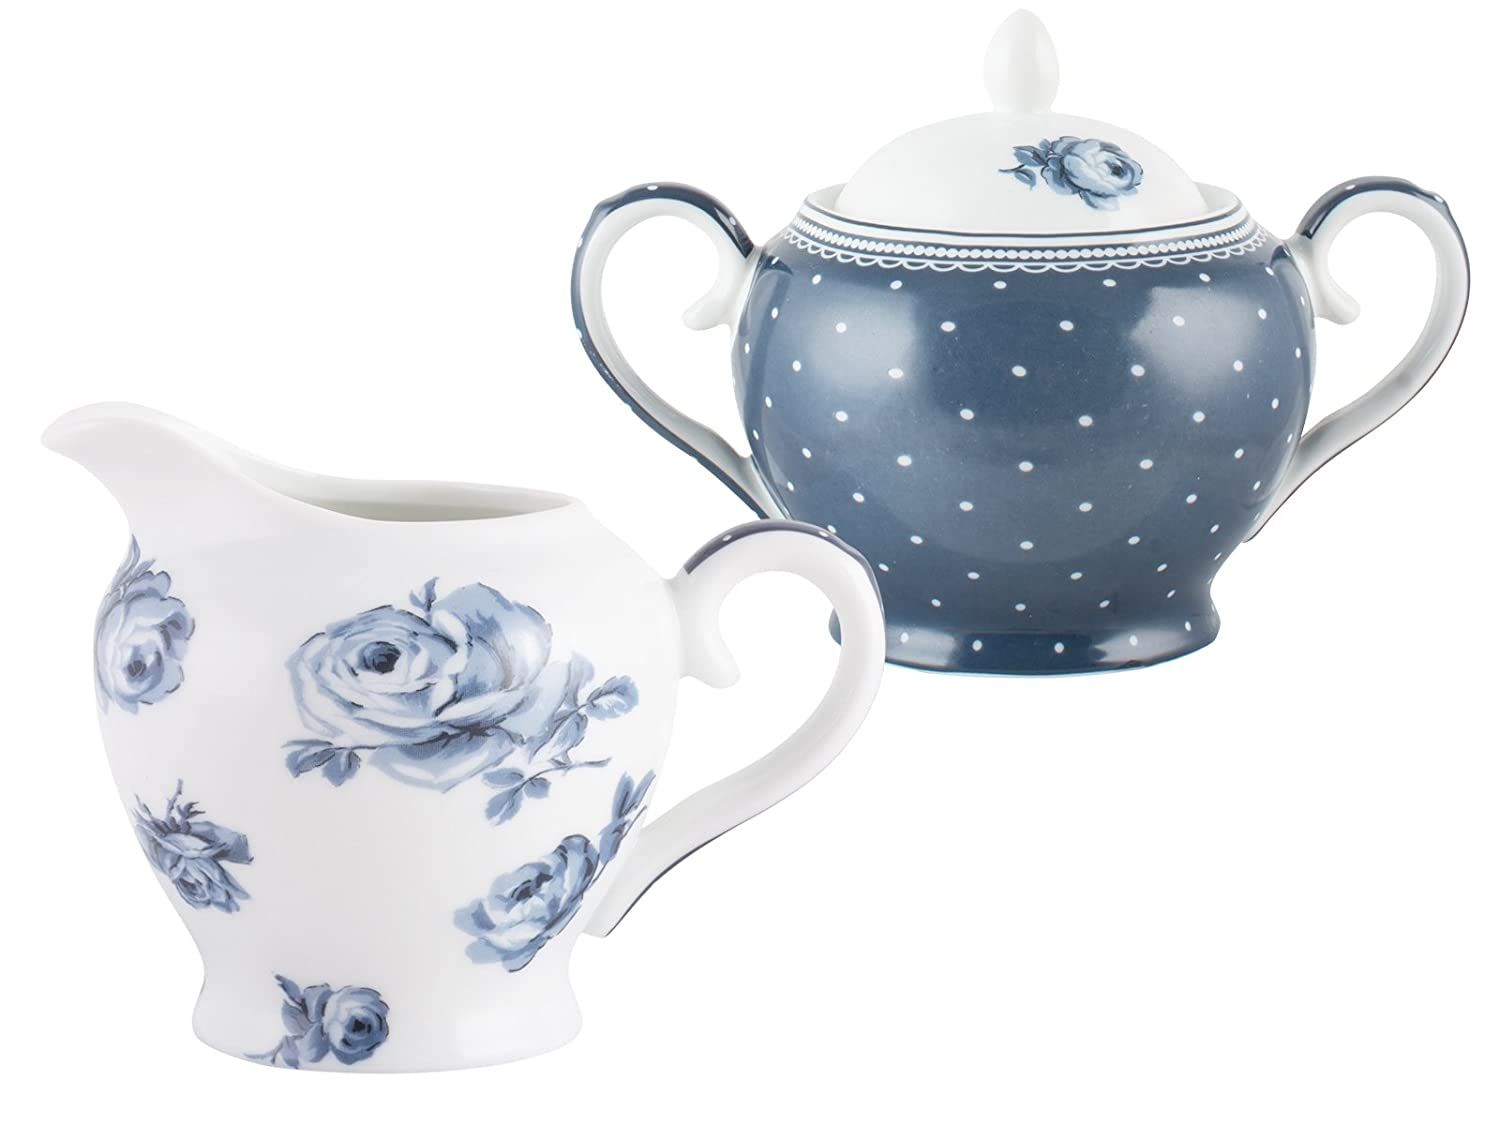 """Katie Alice """"Cottage Flower"""" Porcelain Sugar Bowl and Creamer Jug by Creative Tops, 9 x 9 cm (3½"""